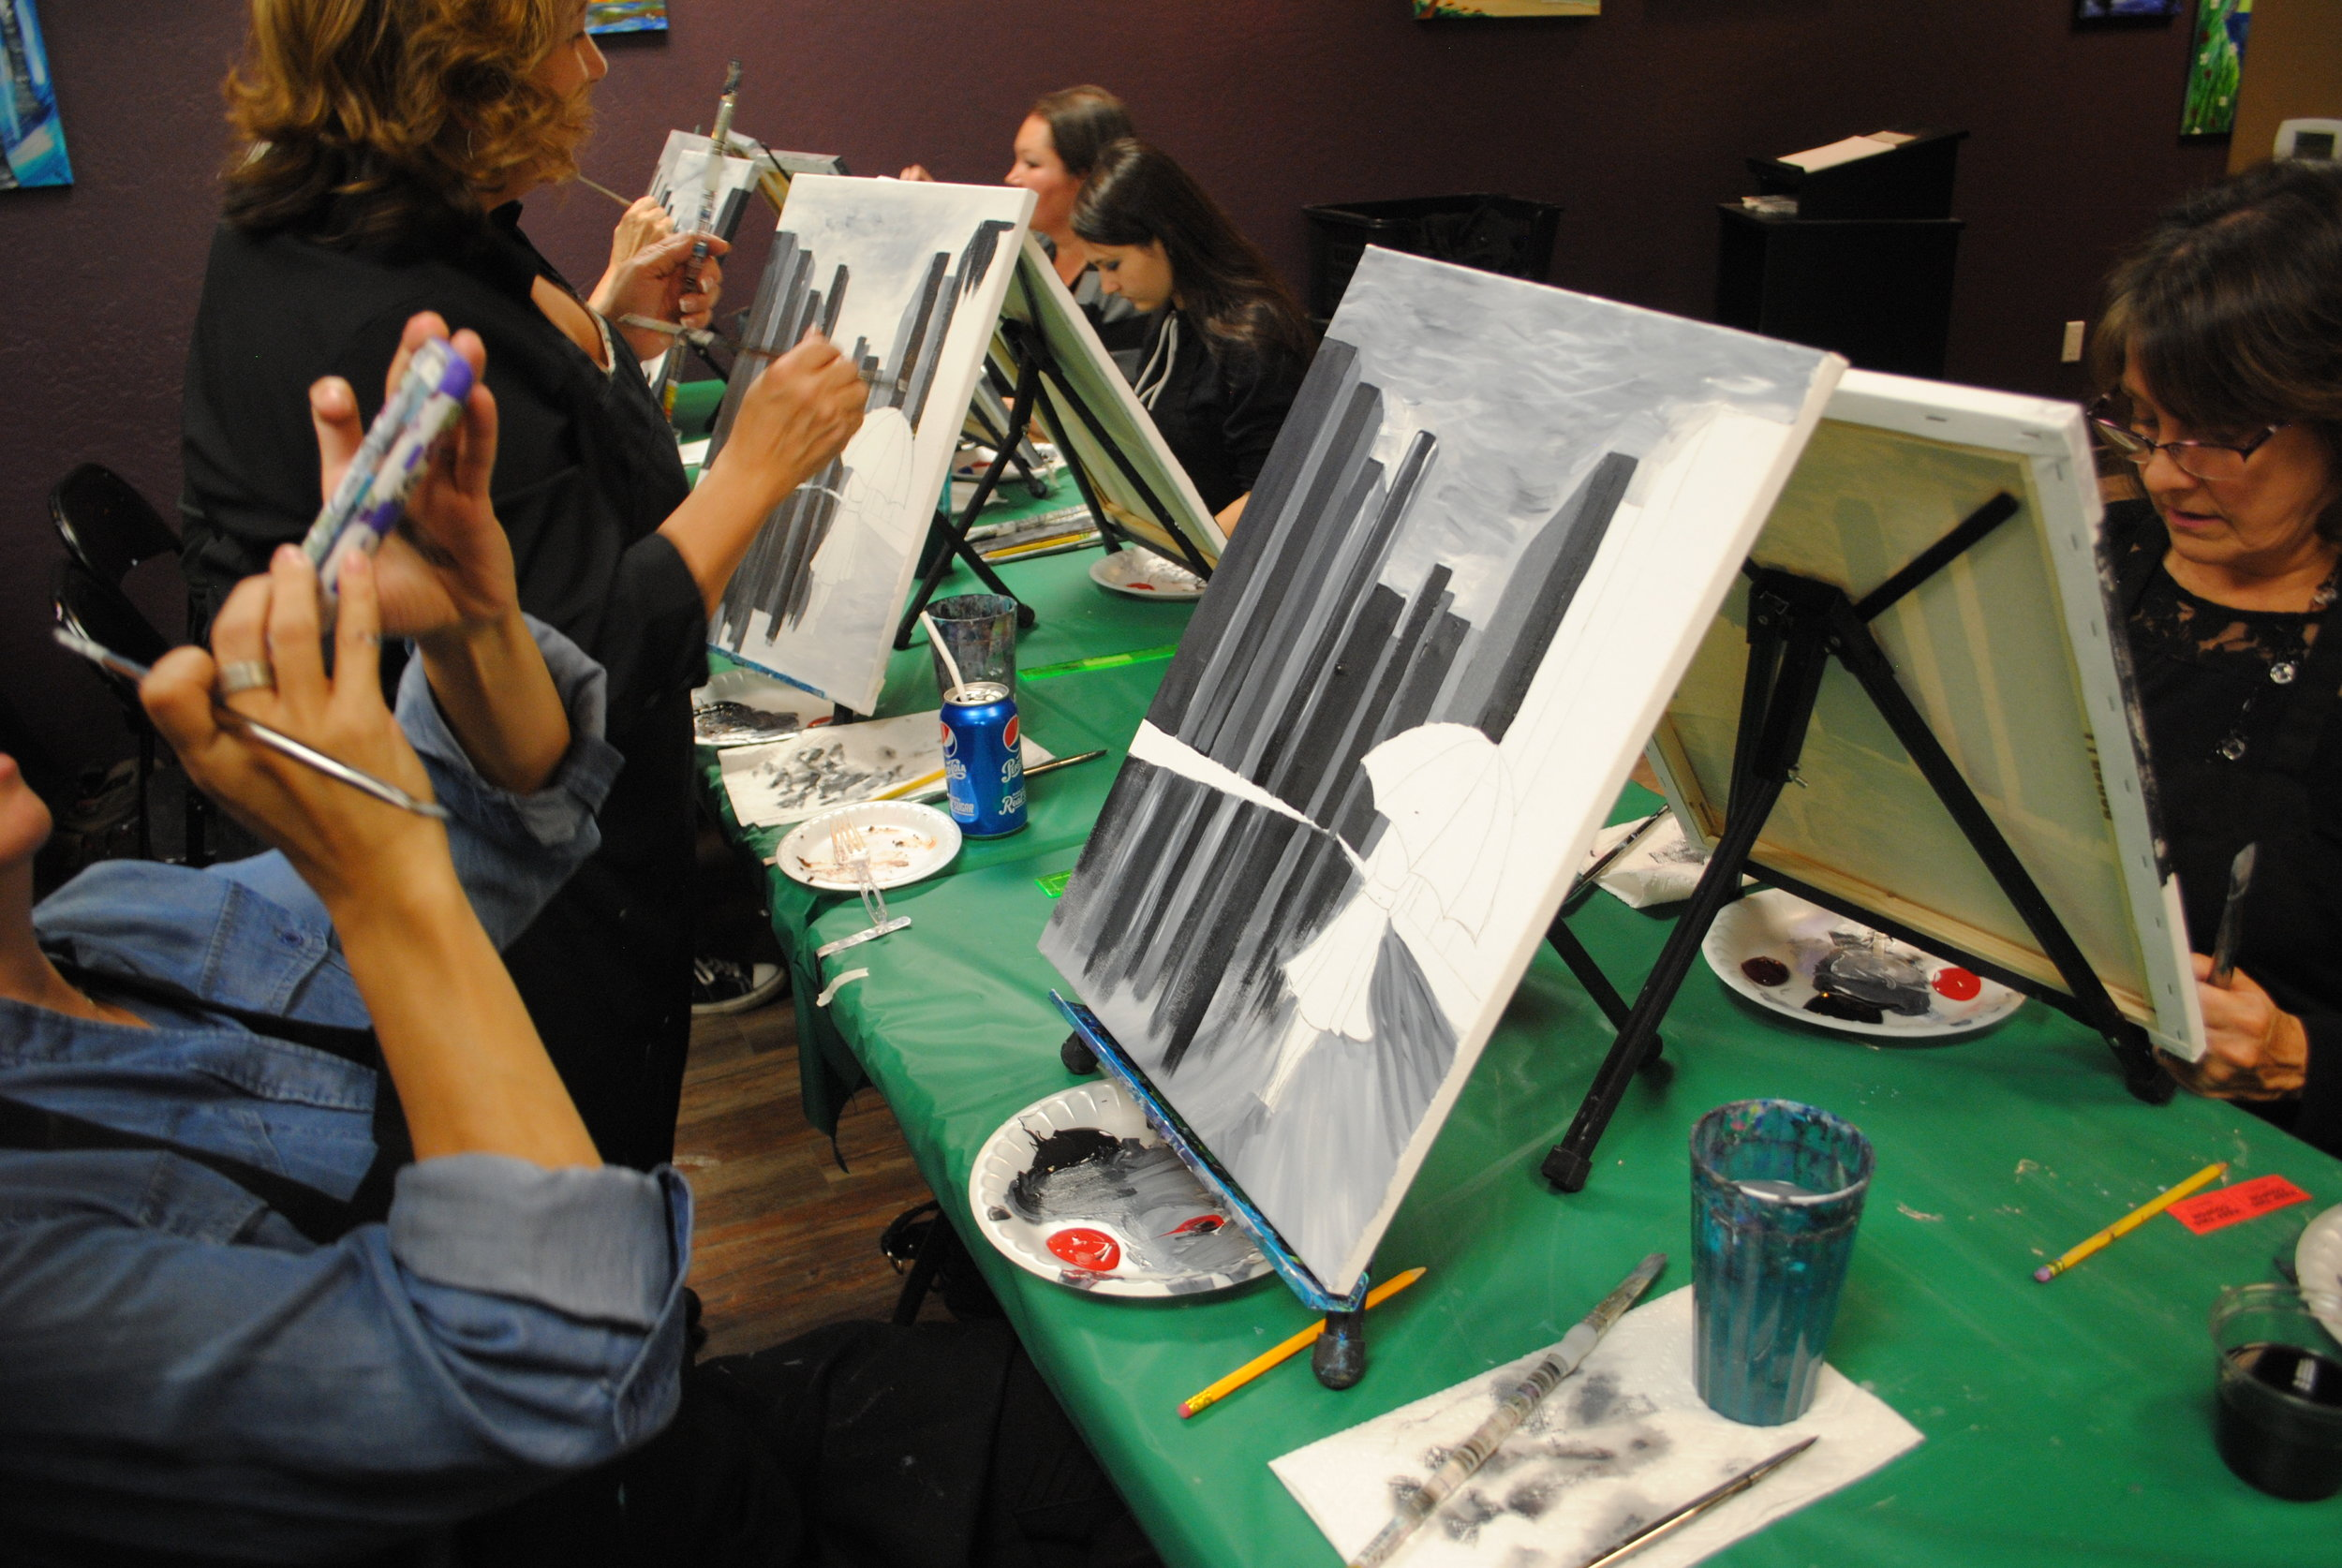 ART 4 JOY - Sip n' Paint - Central Point - What to do in Southern Oregon - Things to do - Events - Girls Night - Family - Kids (21).JPG